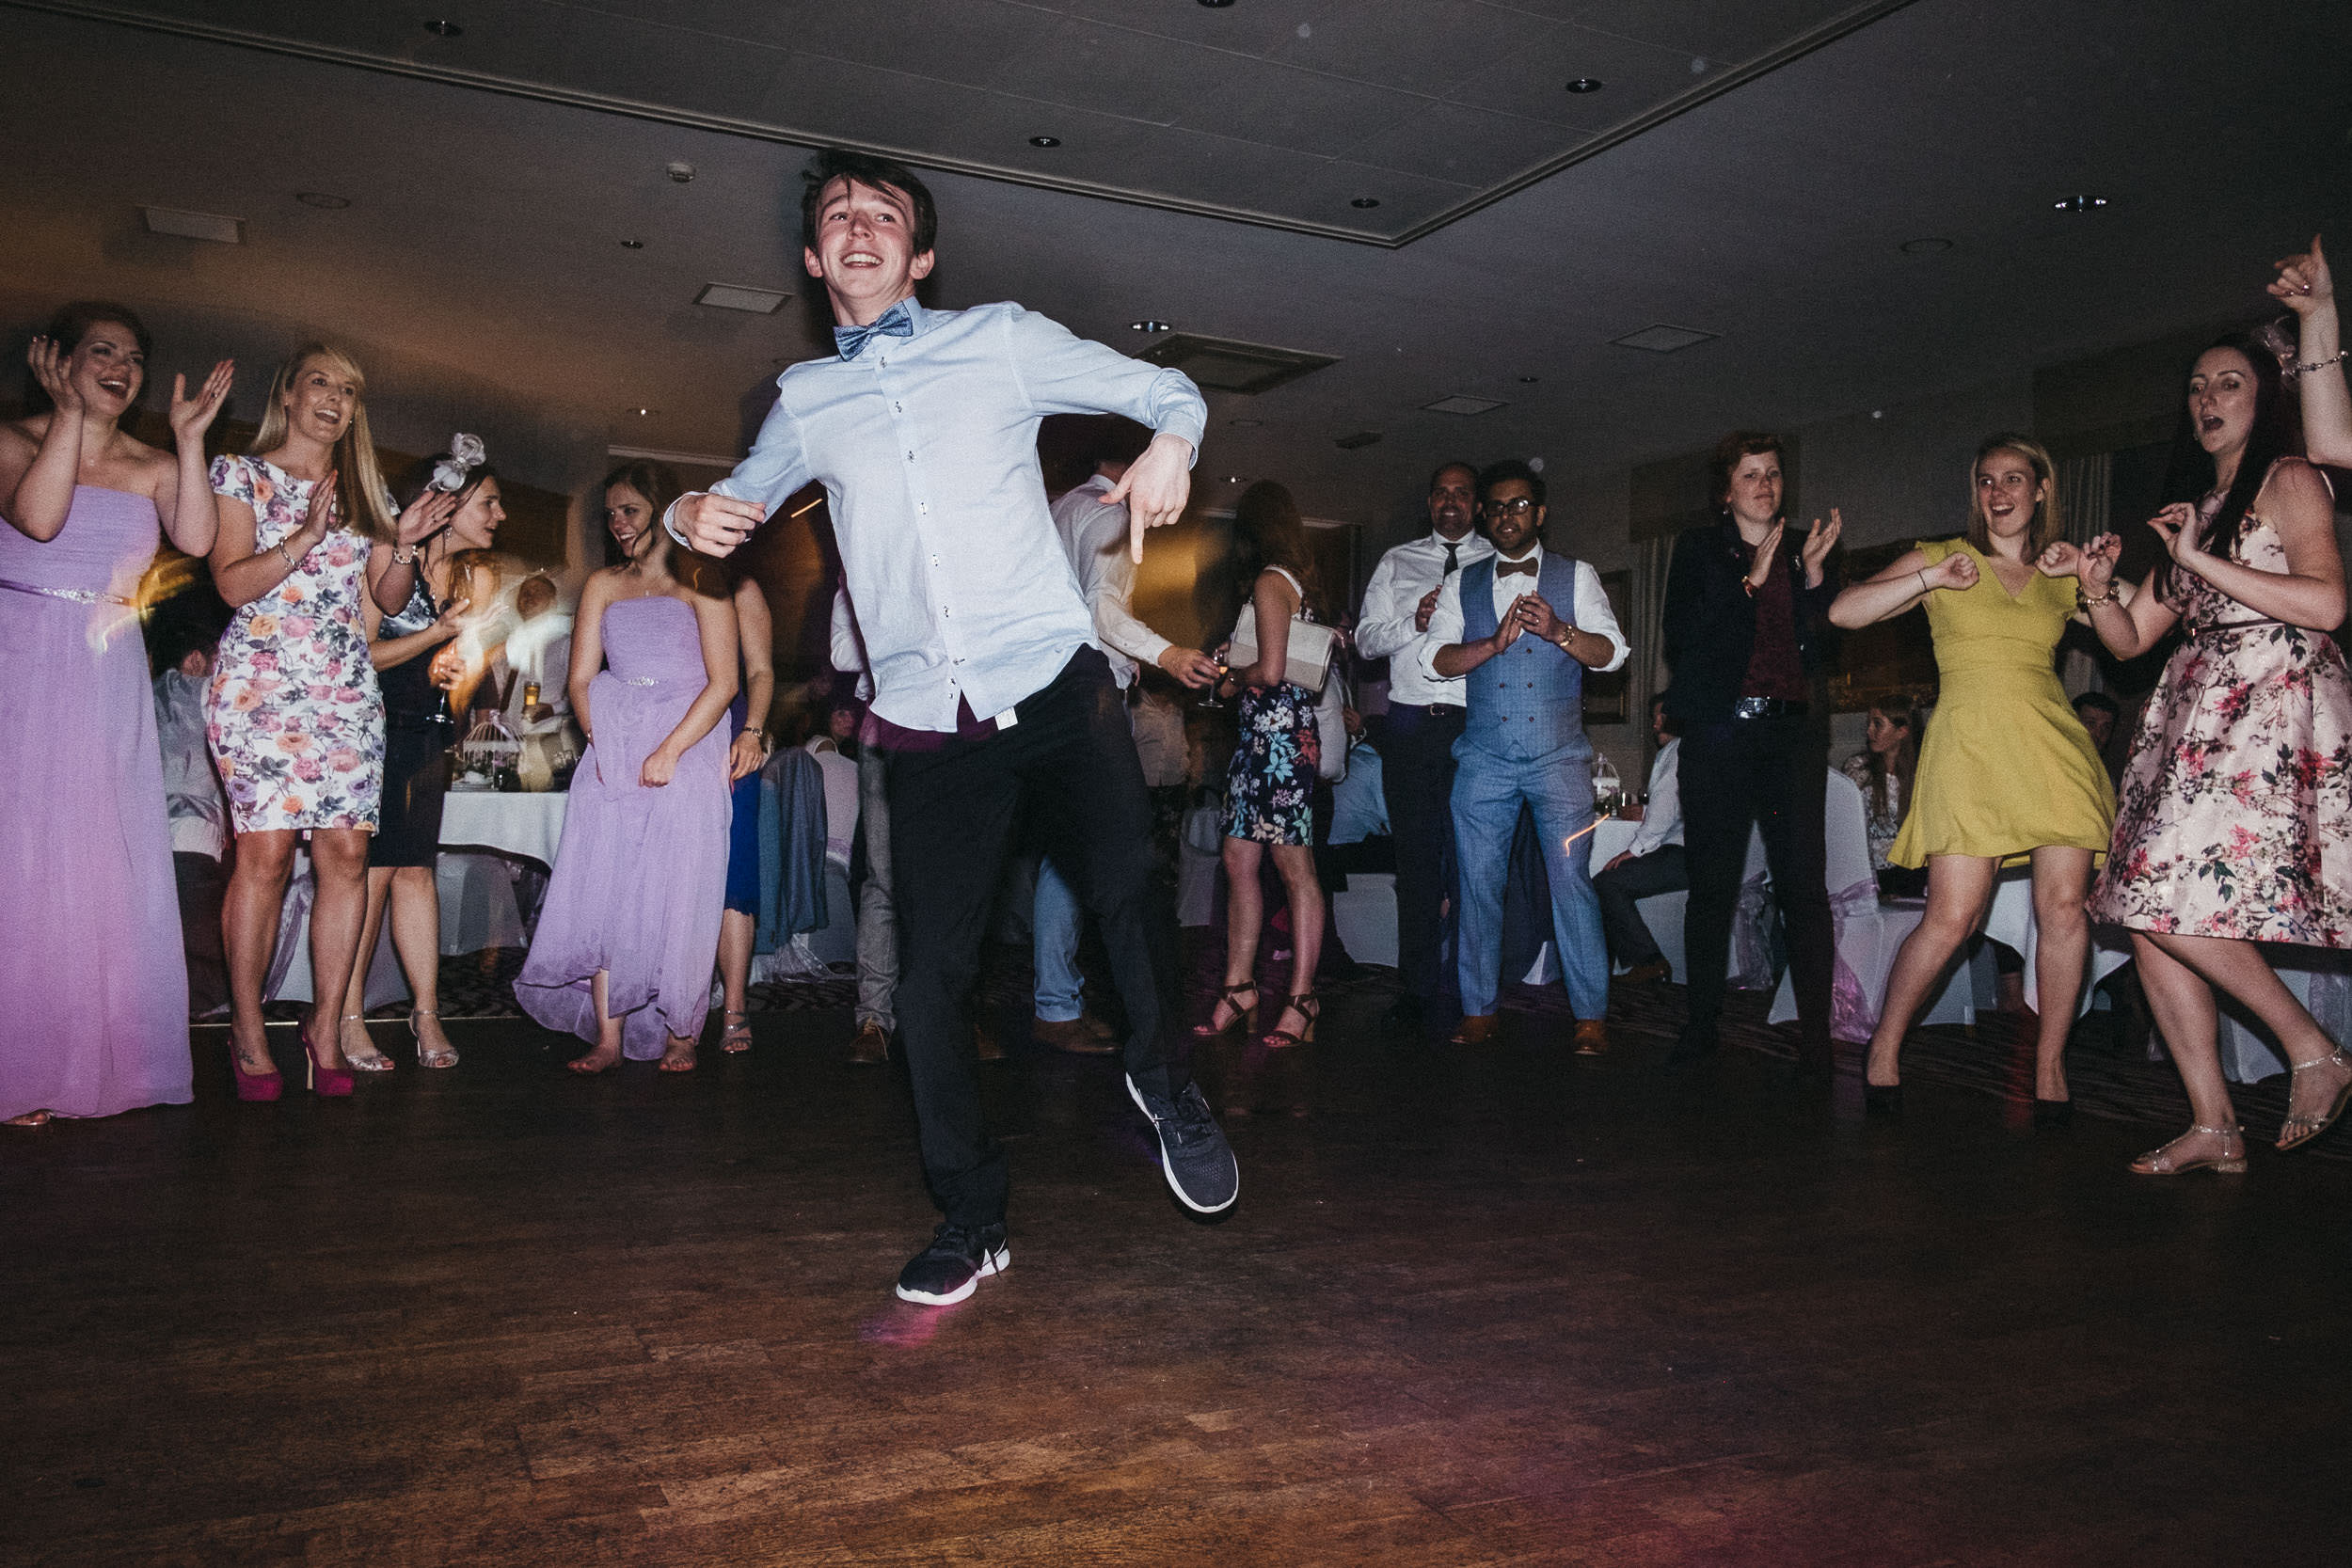 Young wedding guest dancing while other guest watch